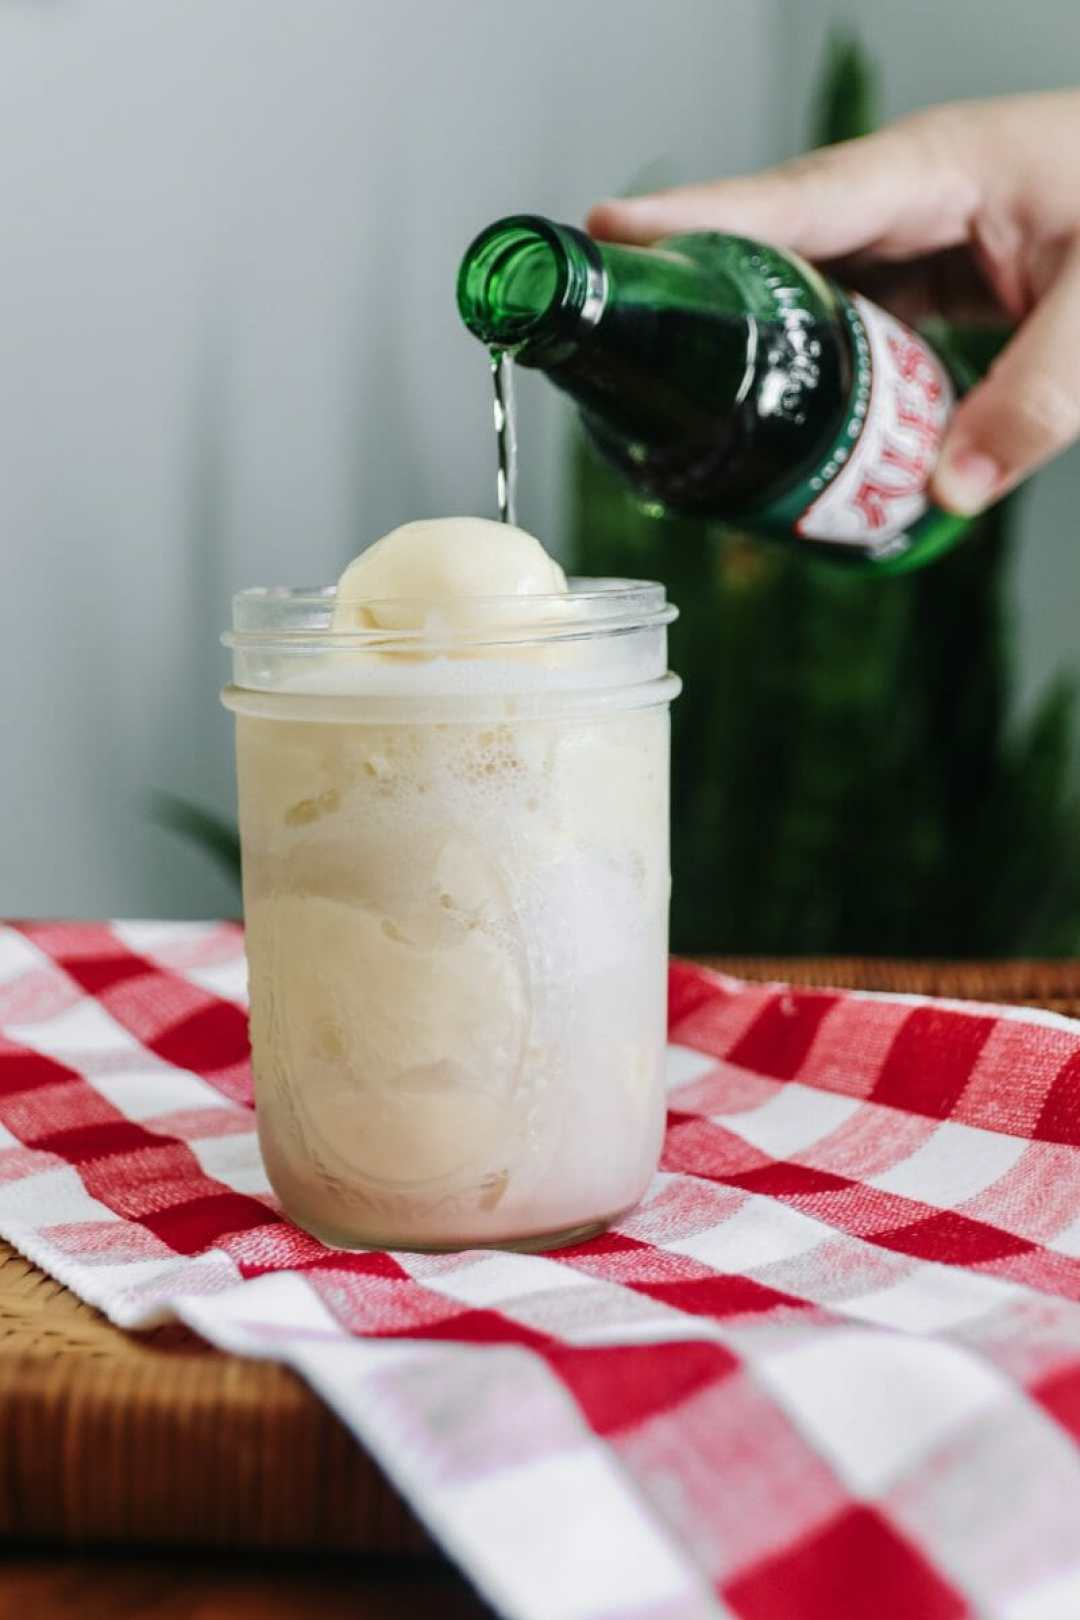 Homemade Ale-8-One Lemon Ice Cream Floats by JCP Eats (JC Phelps)